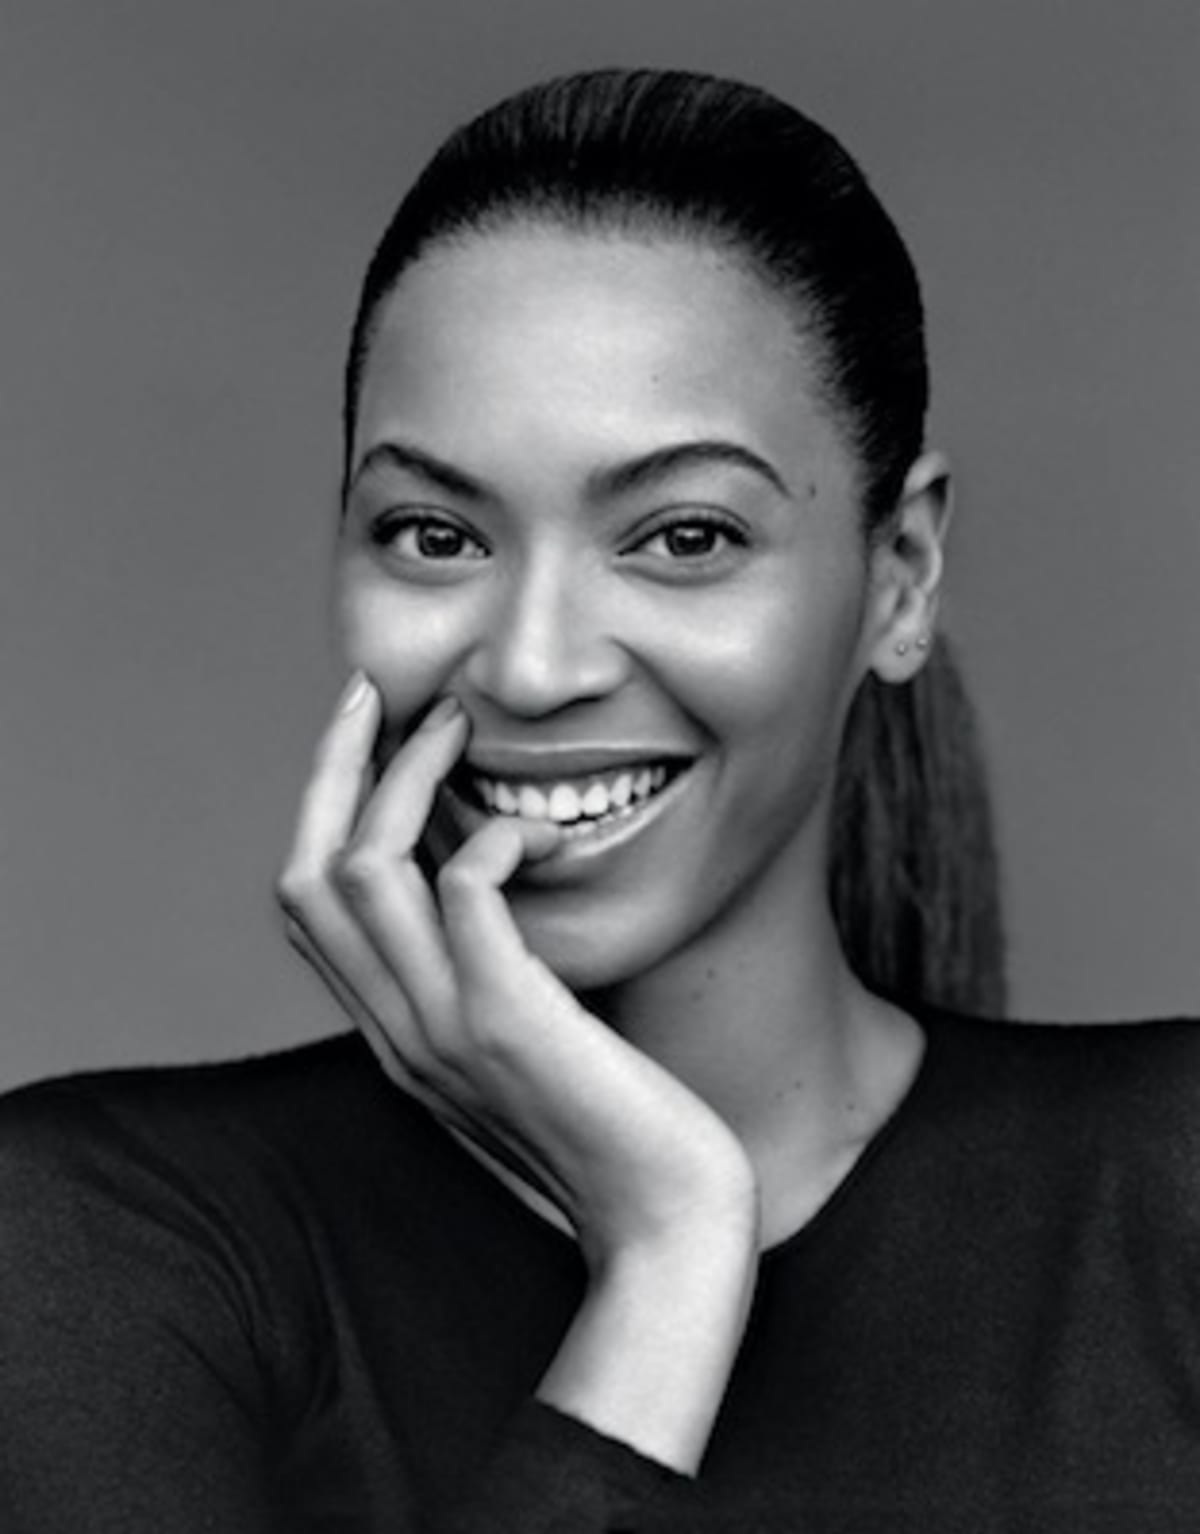 Beyoncé looks beautiful in a black and white shoot for the gentlewoman